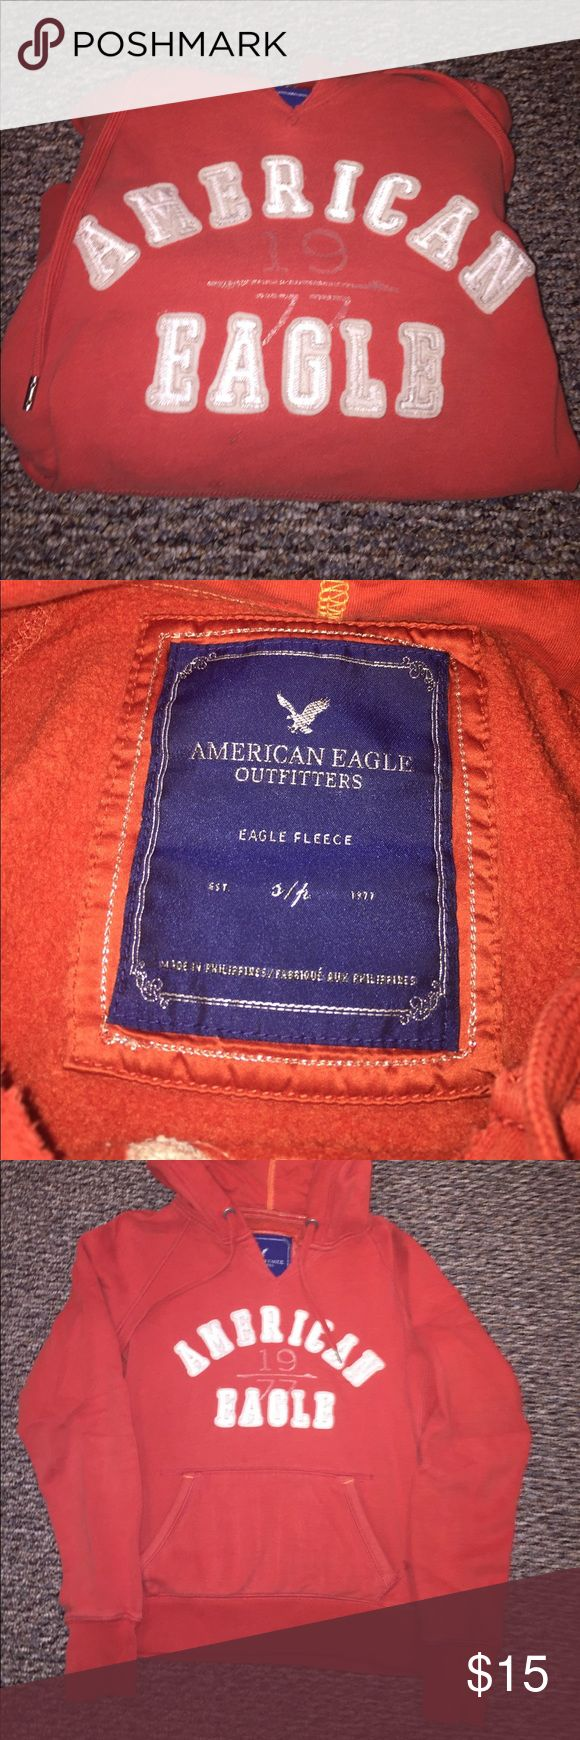 American eagle orange hoodie!! American eagle orange hoodie!! Good Condition !! Worn but no heavy wear or damage. Cut v neck was originally bought this way!! American Eagle Outfitters Tops Sweatshirts & Hoodies